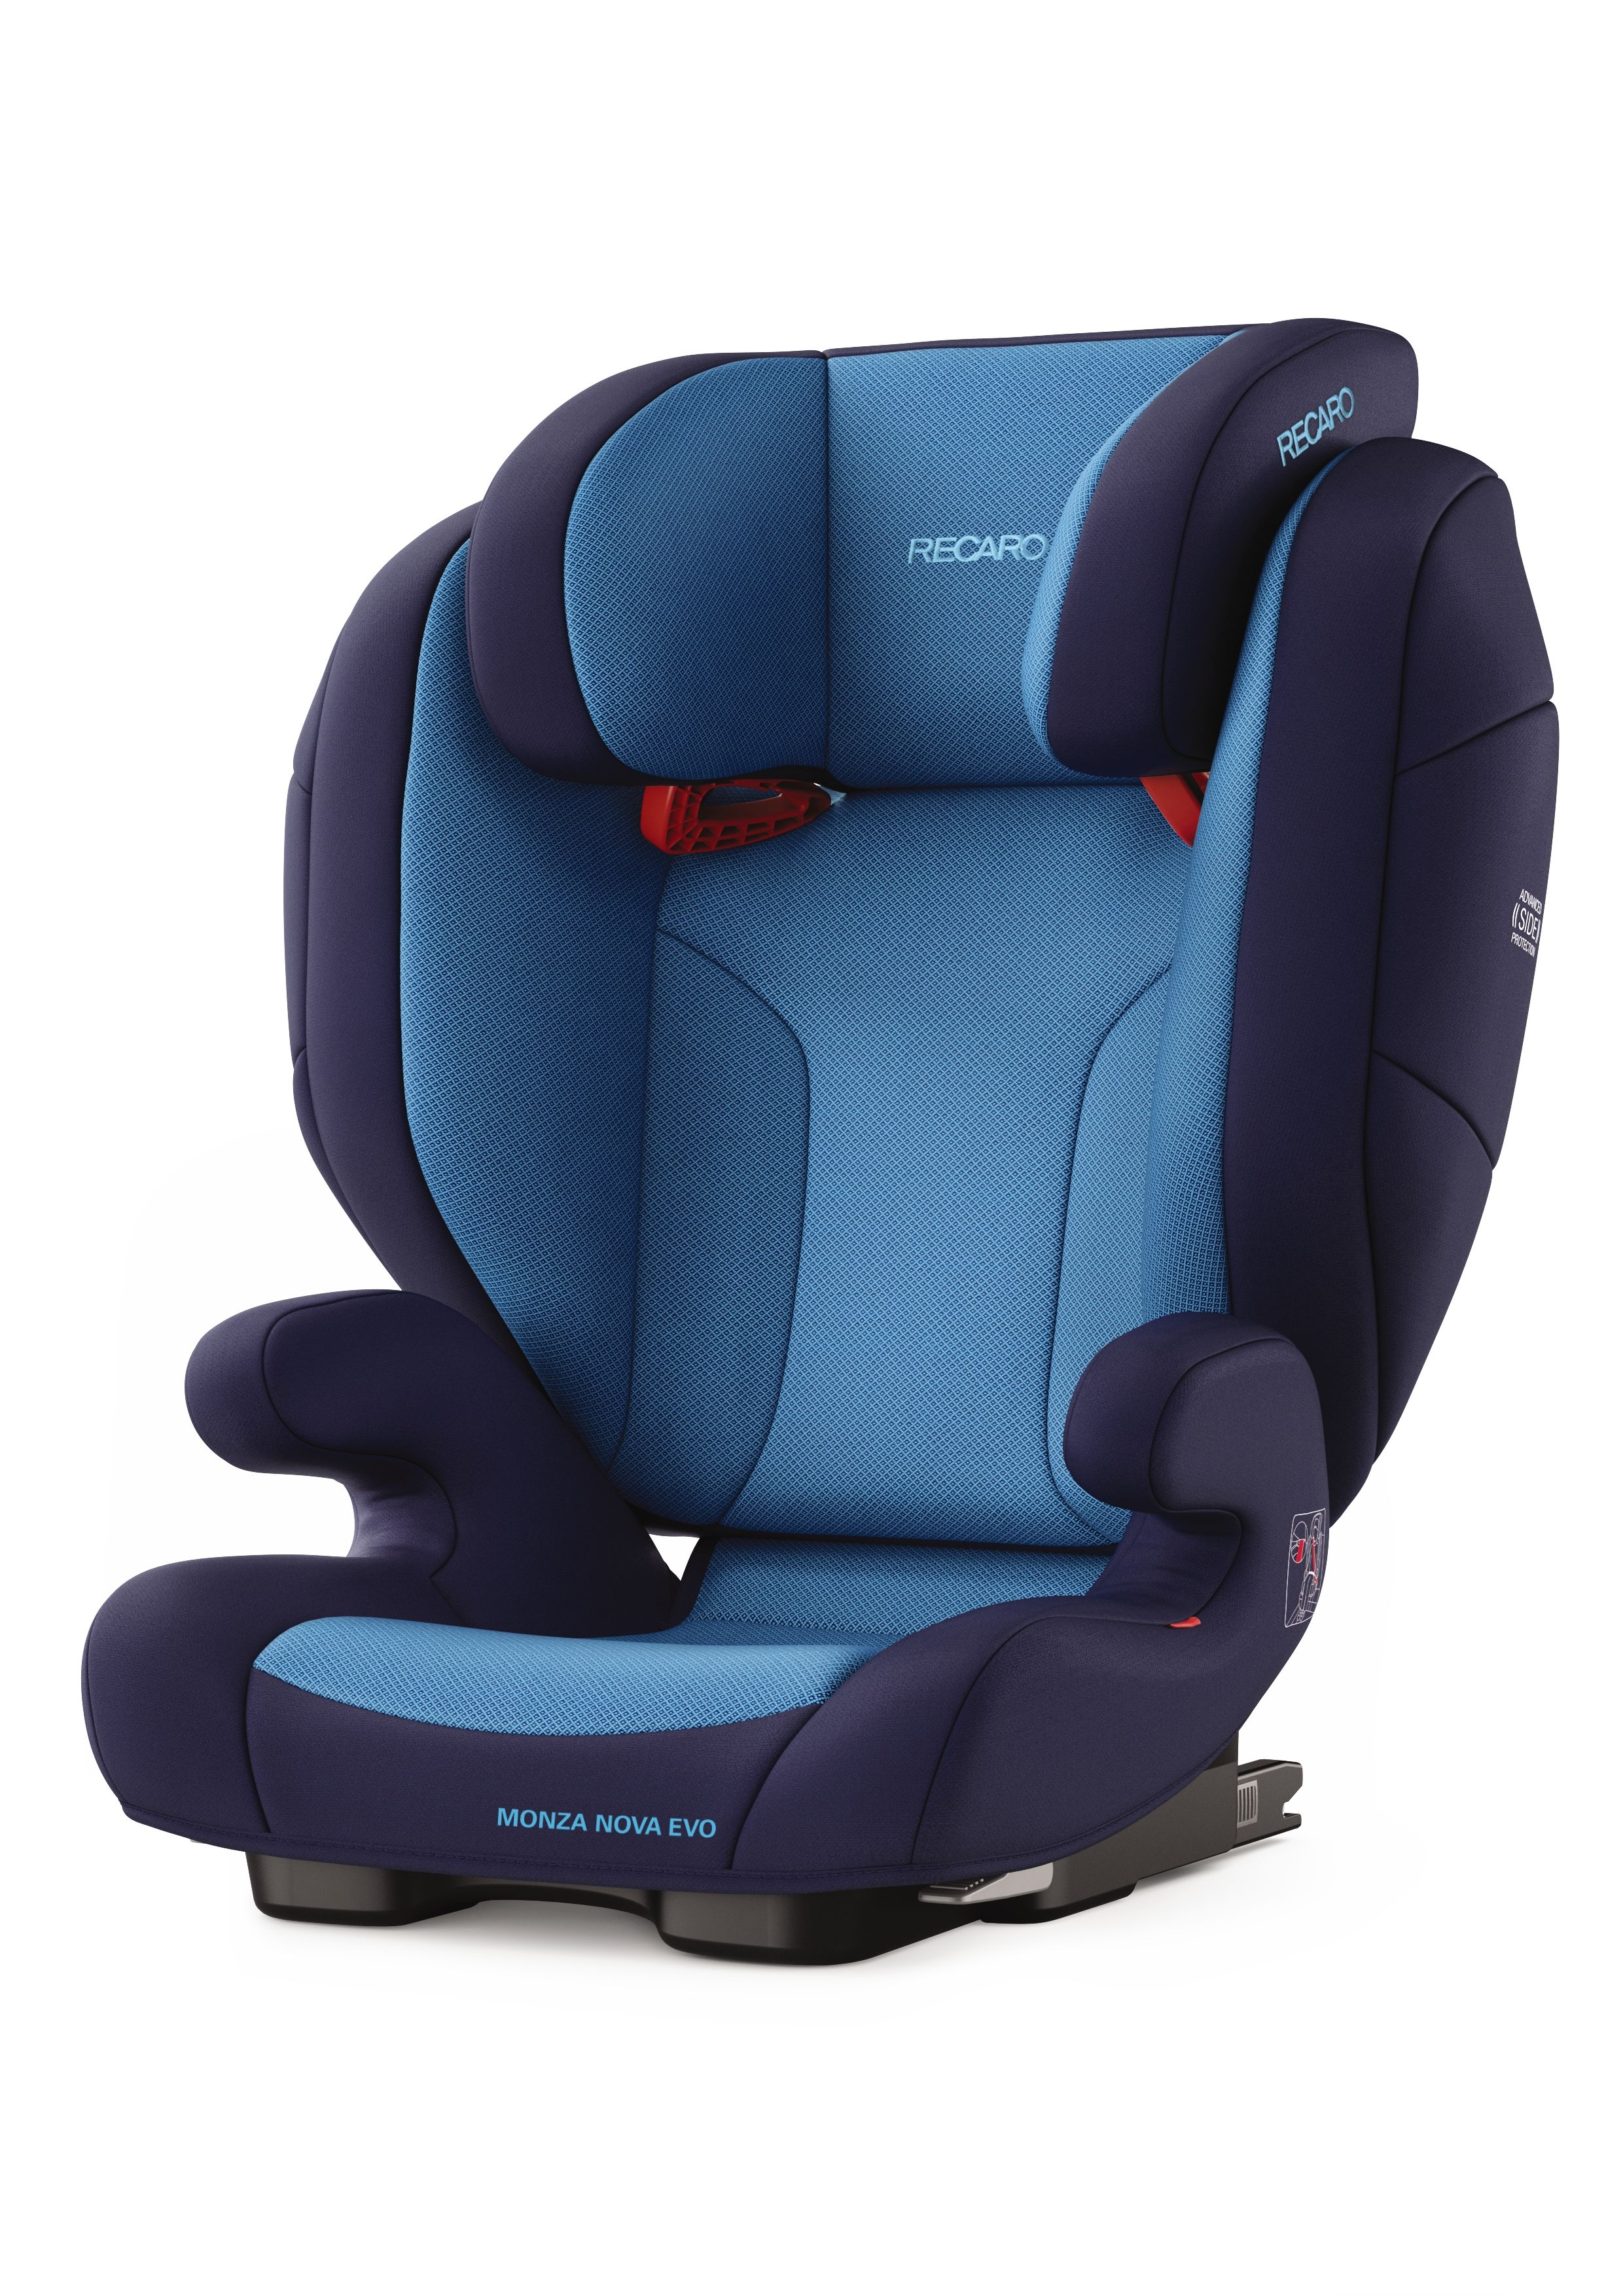 recaro child car seat monza nova evo seatfix 2018 xenon blue buy at kidsroom car seats. Black Bedroom Furniture Sets. Home Design Ideas